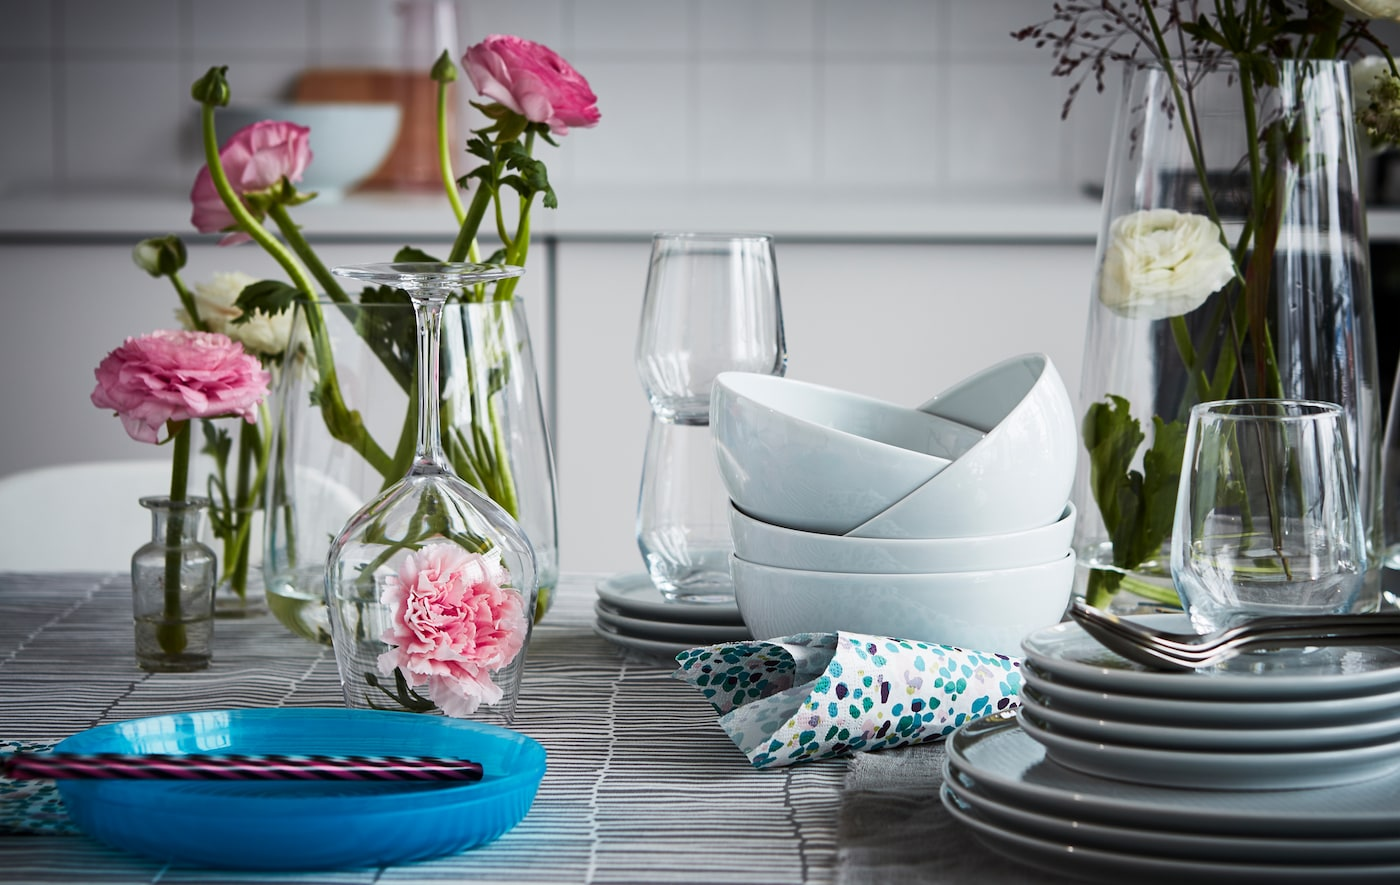 A fresh and flowery table setting with a modern mix of dinnerware, cutlery and beautiful wine glasses.